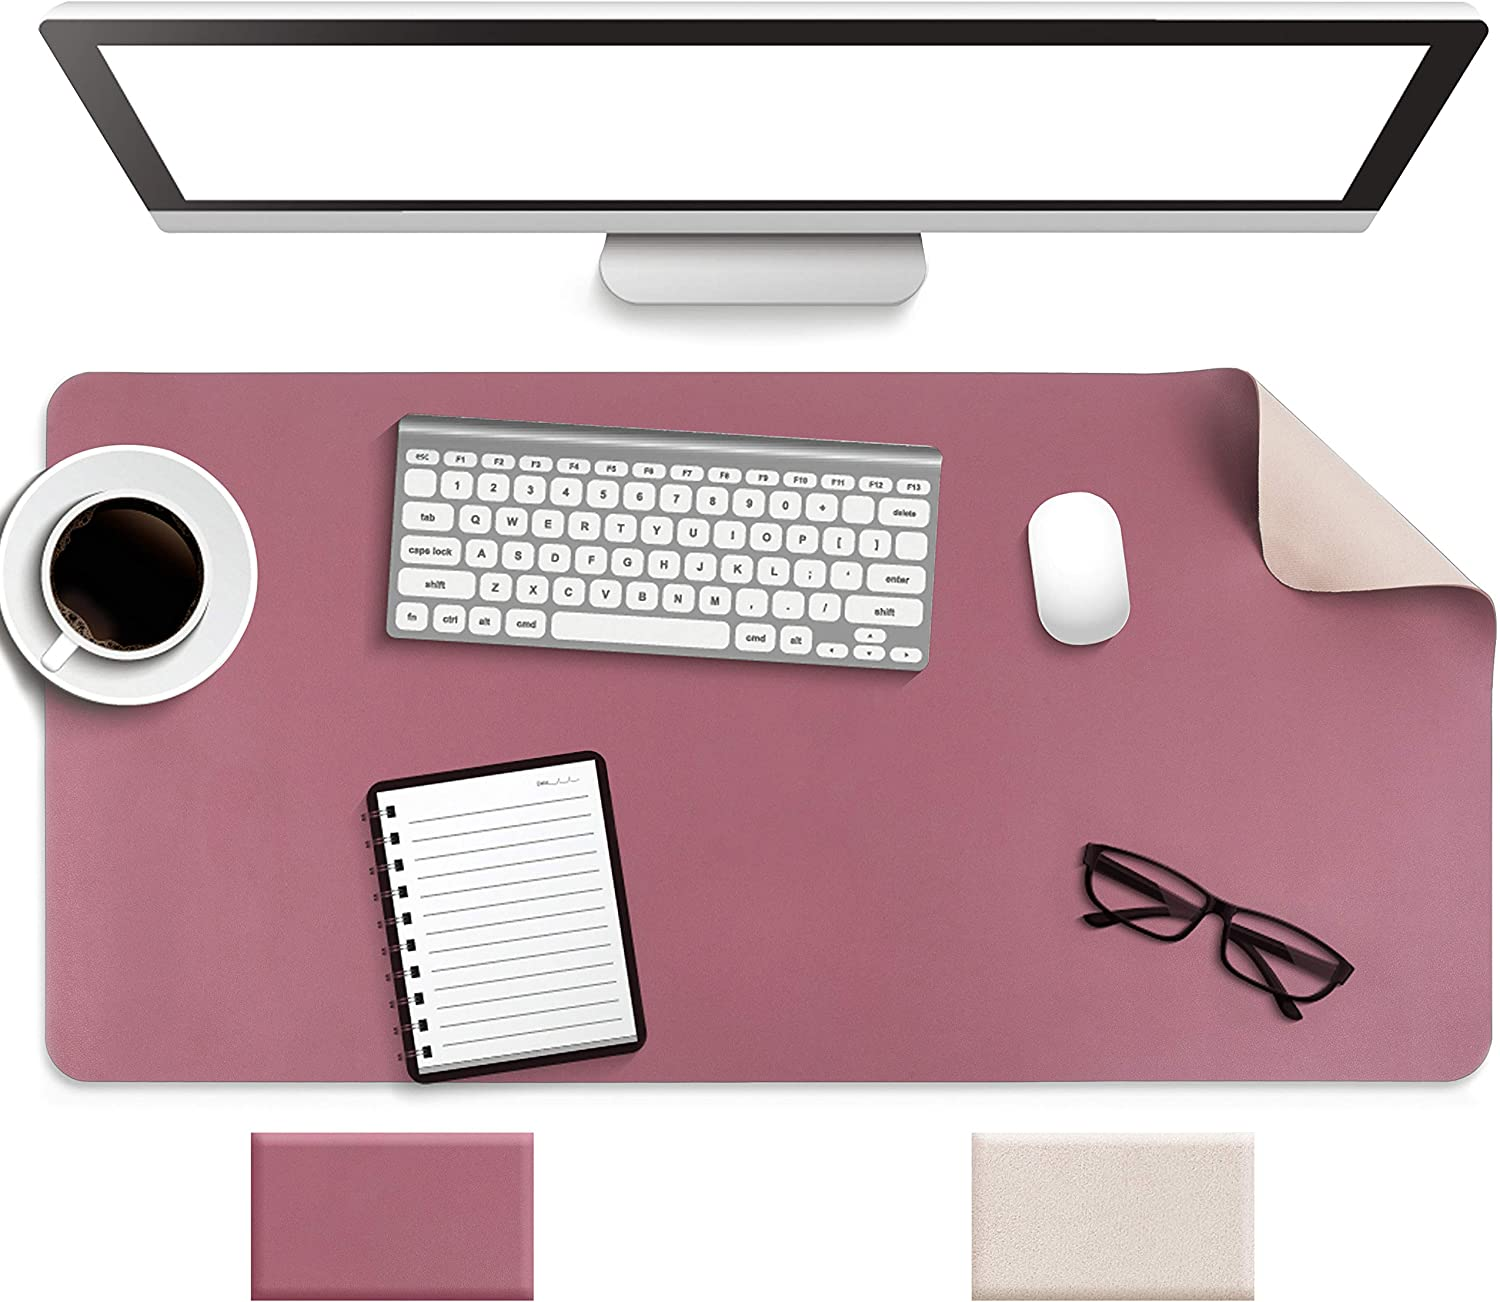 "Non-Slip Desk Pad, Waterproof PVC Leather Desk Table Protector, Ultra Thin Large Mouse Pad, Easy Clean Laptop Desk Writing Mat for Office Work/Home/Decor (Dark Pink, 31.5"" x 15.7"")"